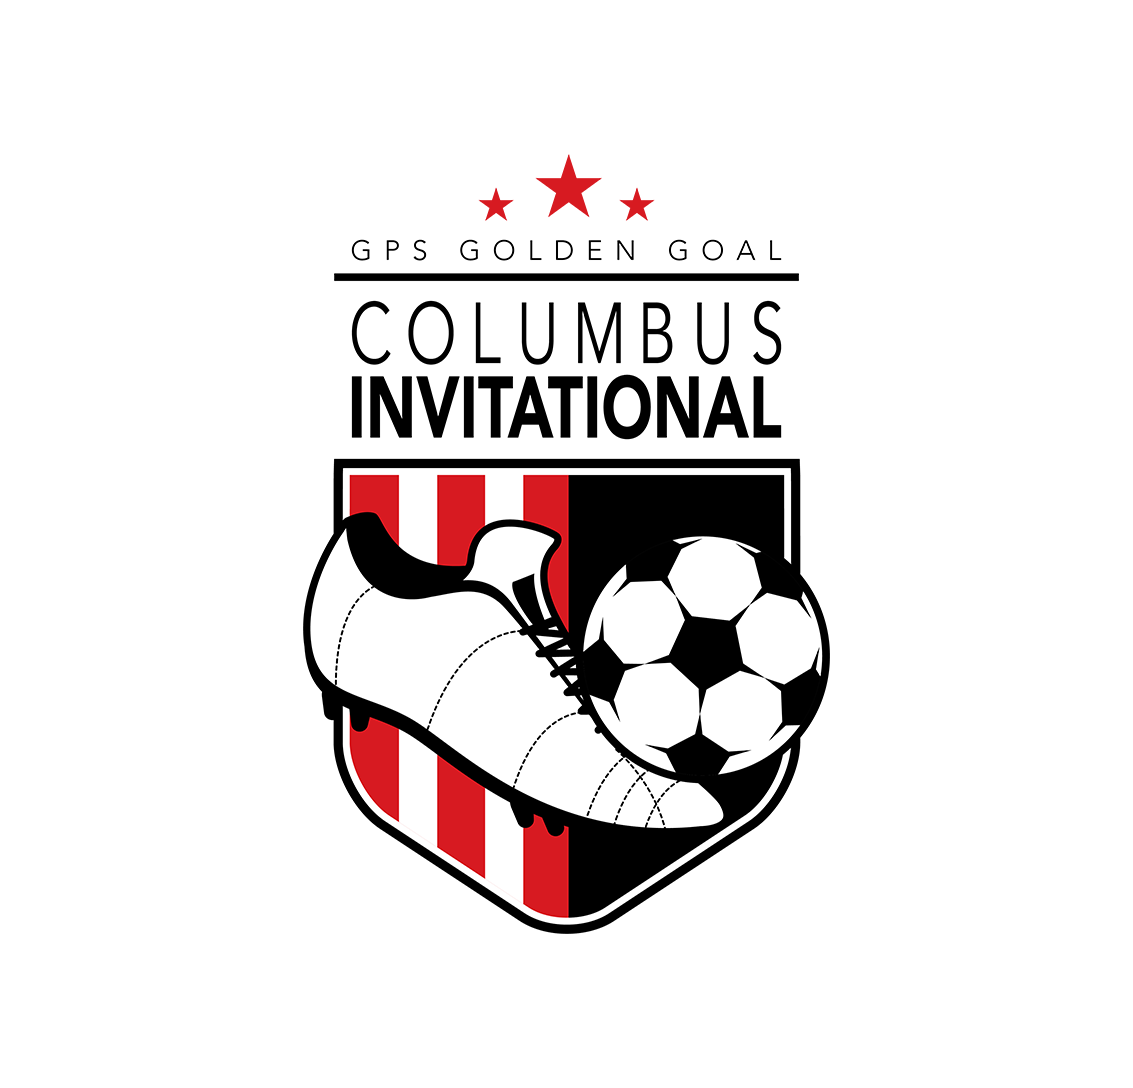 Colombus_Invitational-01.png